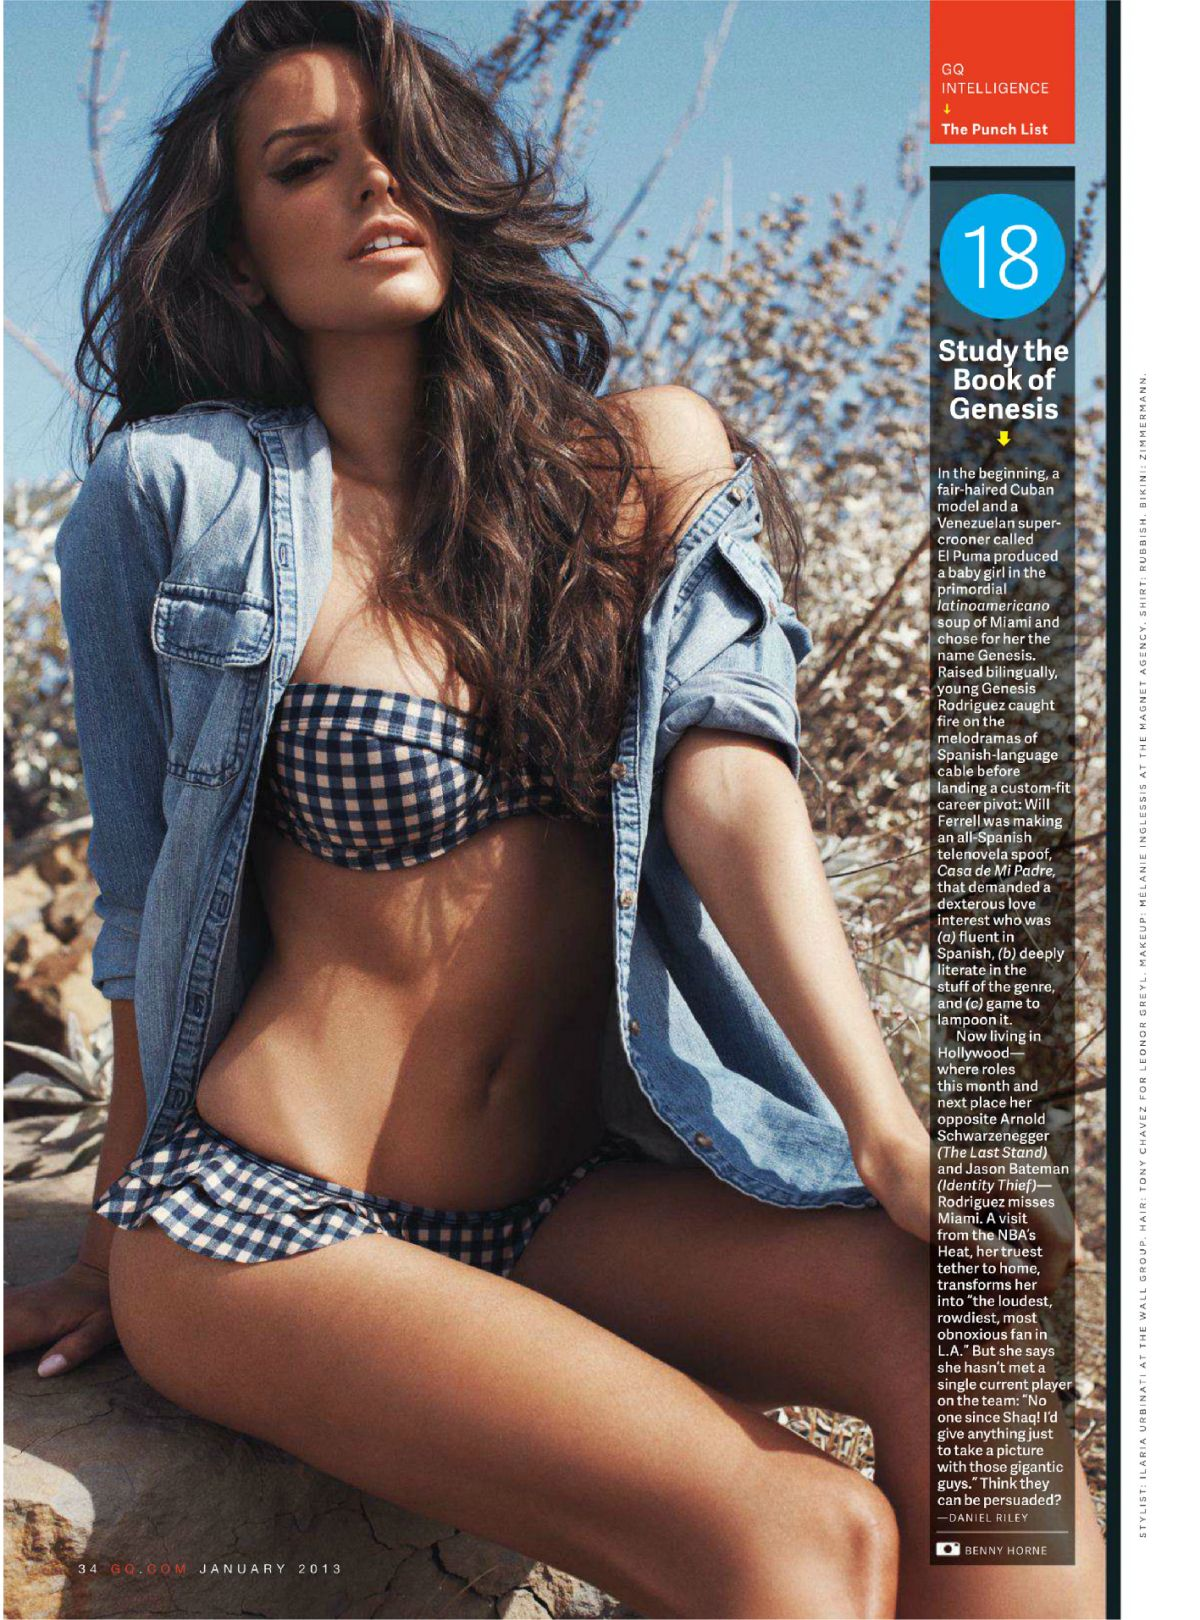 Deepika New Pic In 2014/page/2 | Search Results | Calendar 2015